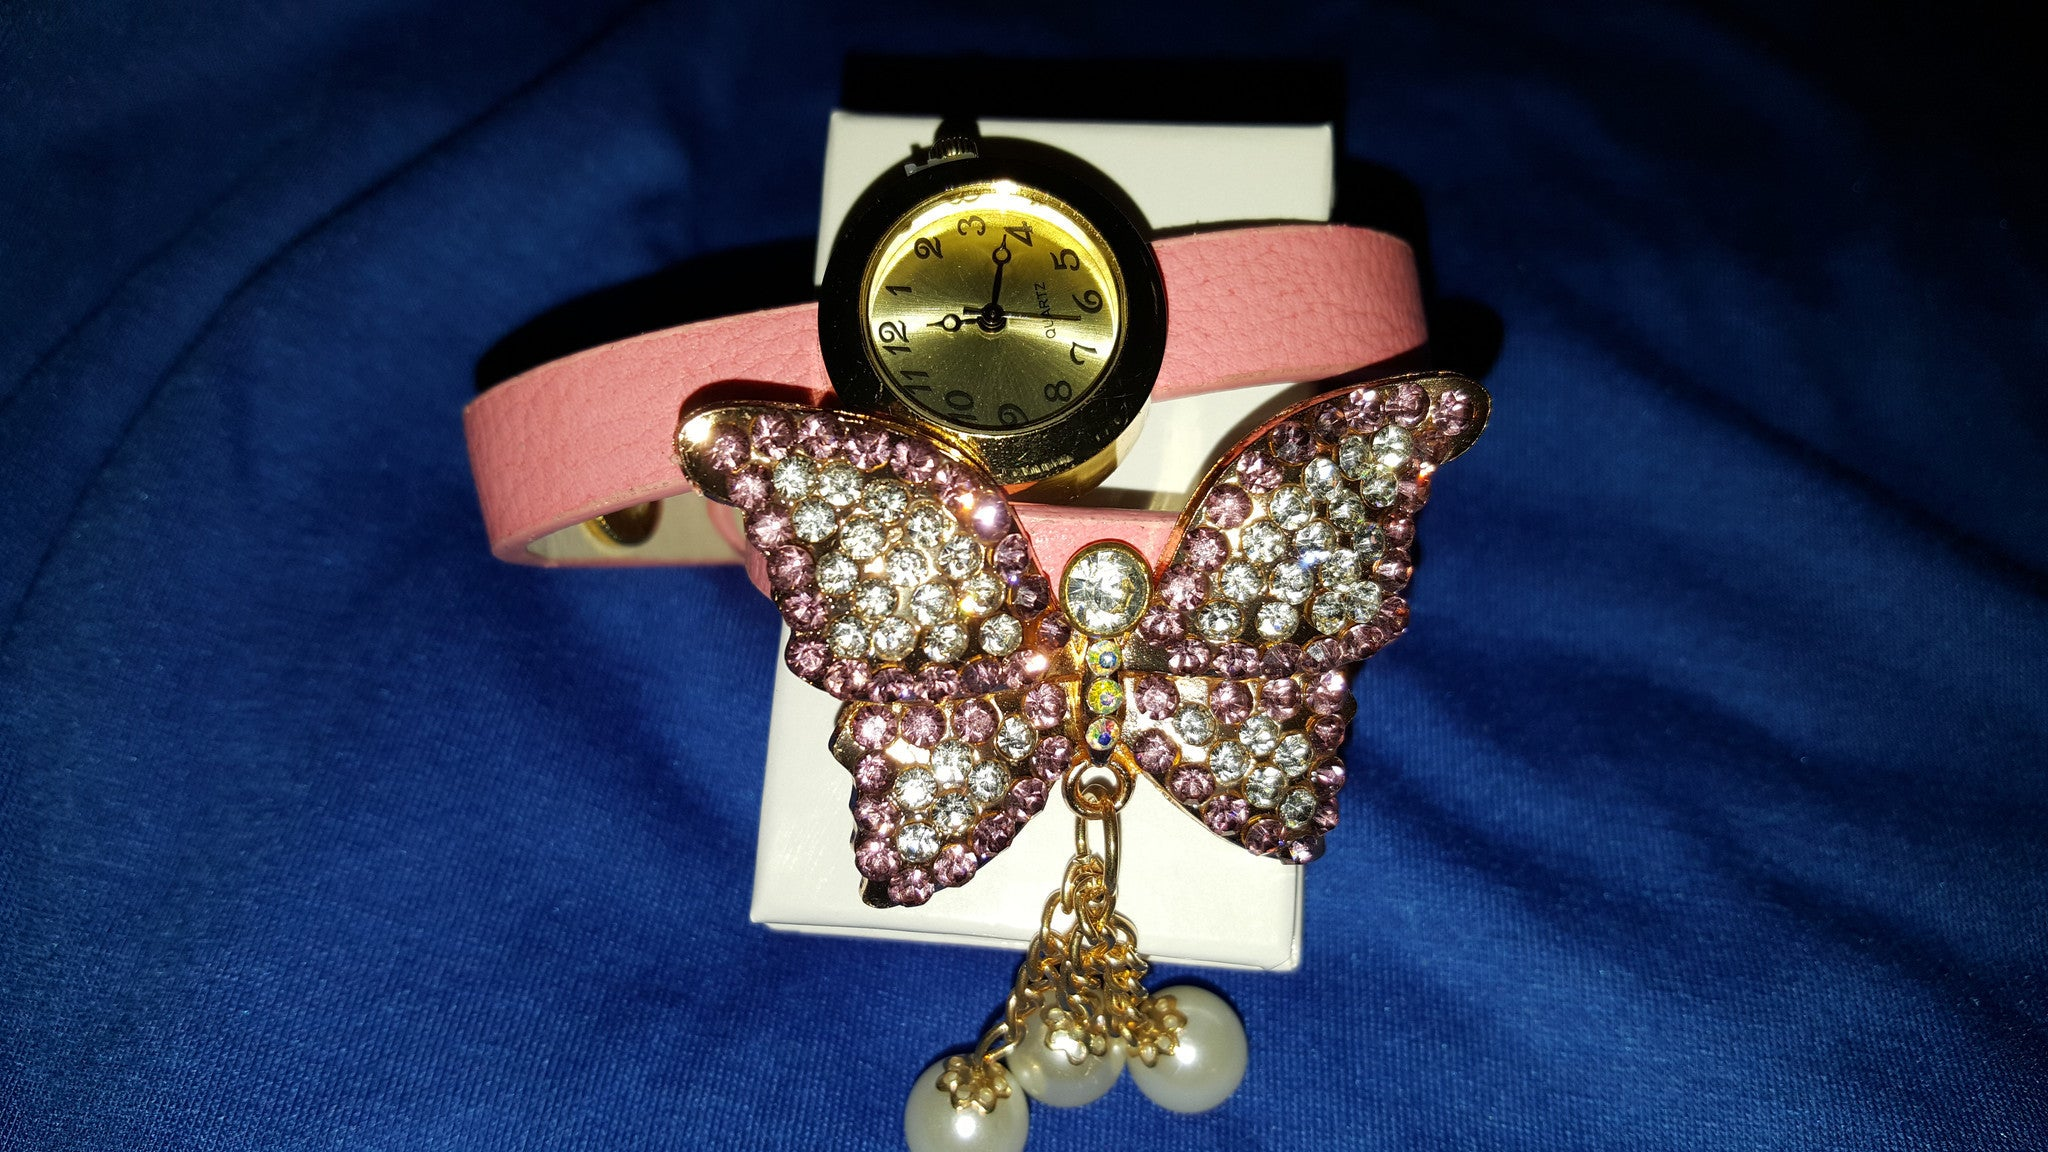 Wrap around pink watch band with beautiful sparkling butterfly. -  New Fashion Finds By Carole